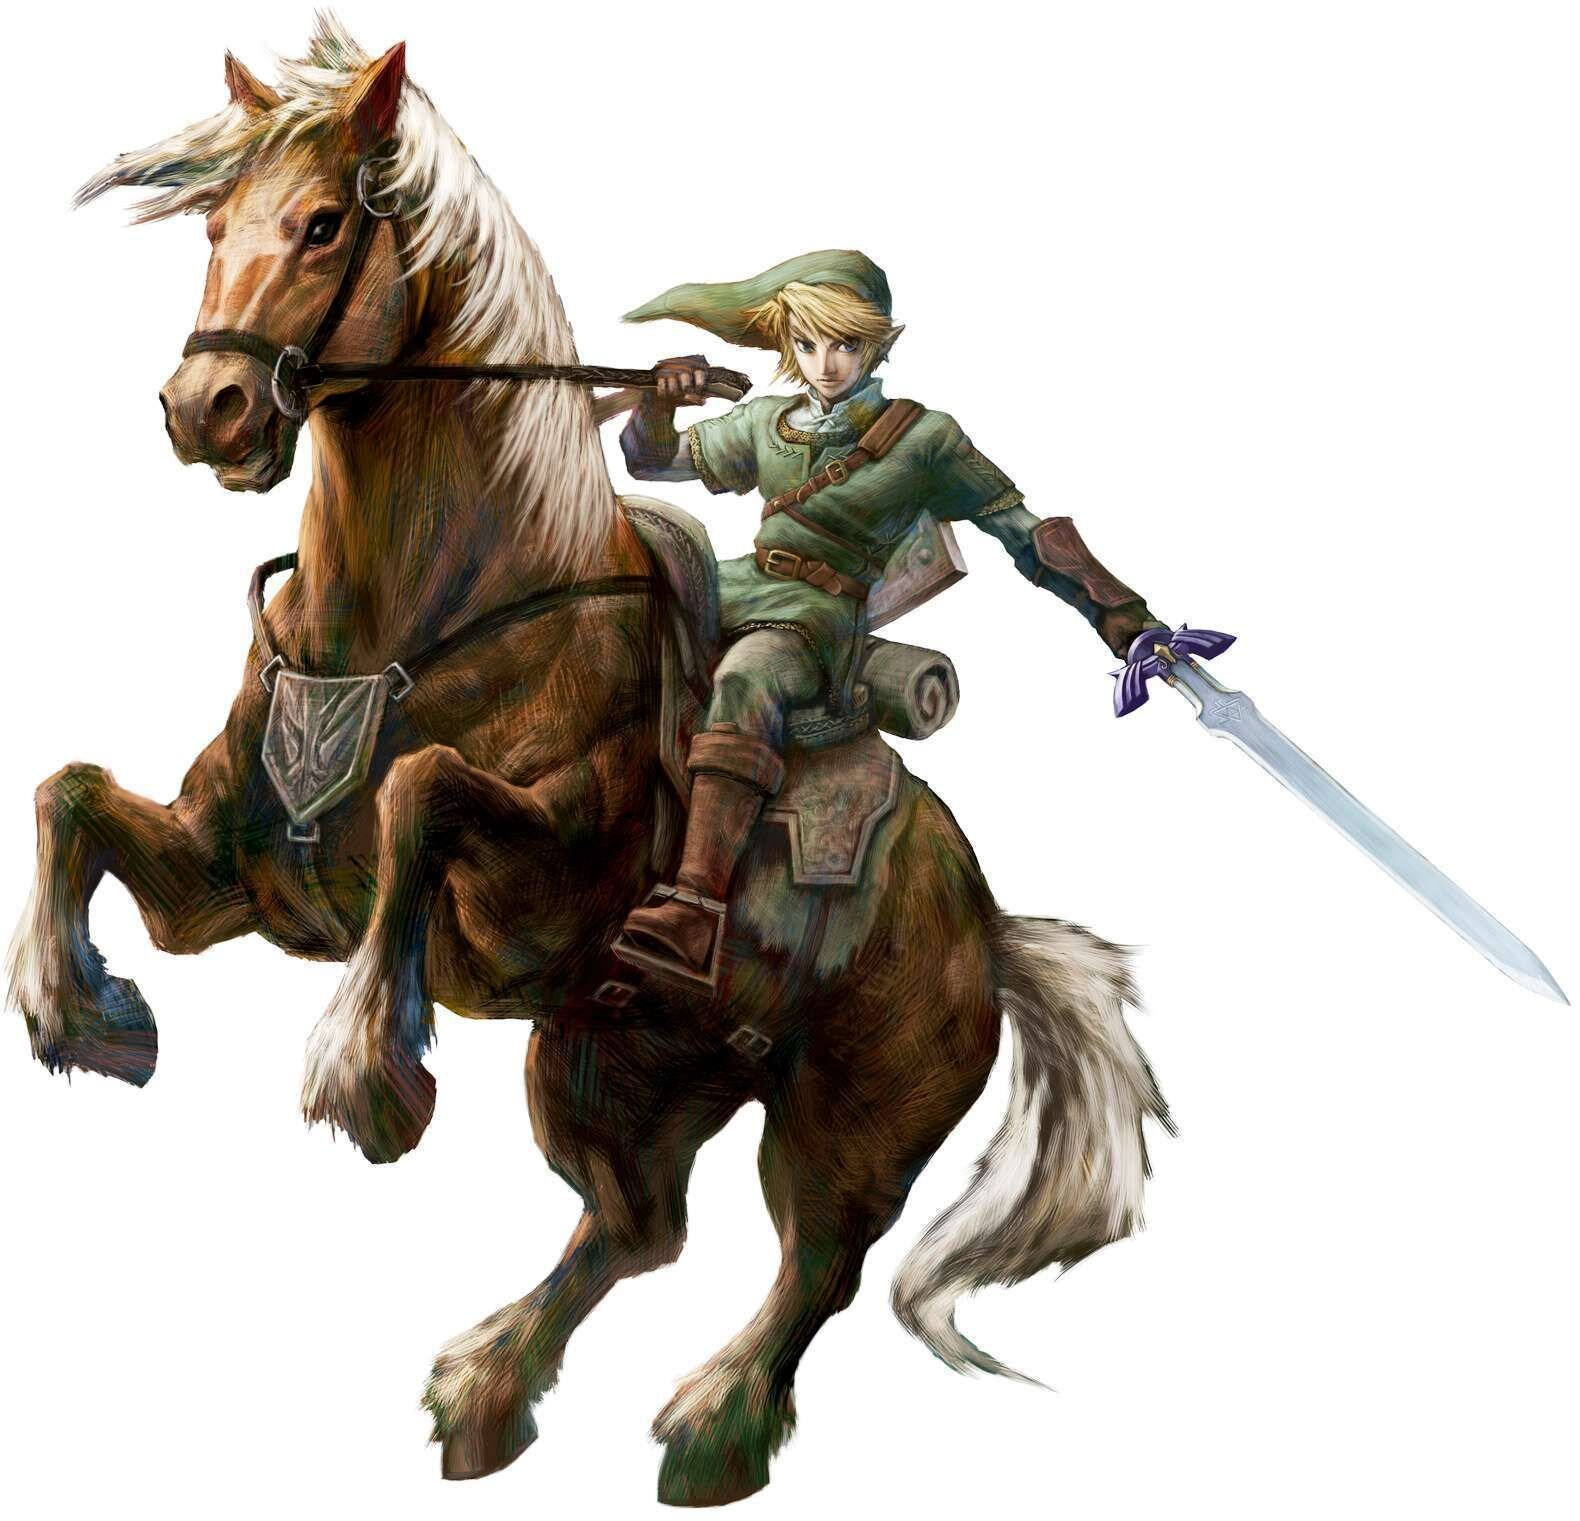 Official artwork of Link and Epona in  Twilight Princess